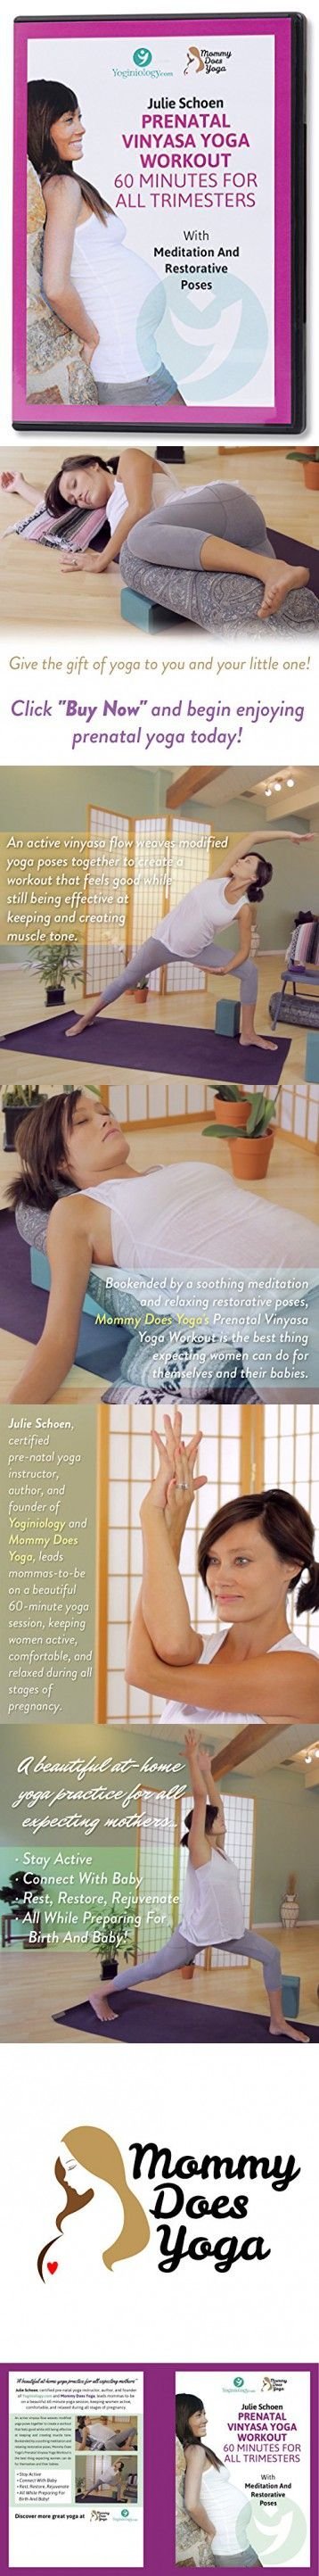 Best Prenatal Yoga DVD Vinyasa Workout with Julie Schoen - 60 Minutes for All Trimesters with Meditation and Restorative Poses for Beginners and Beyond